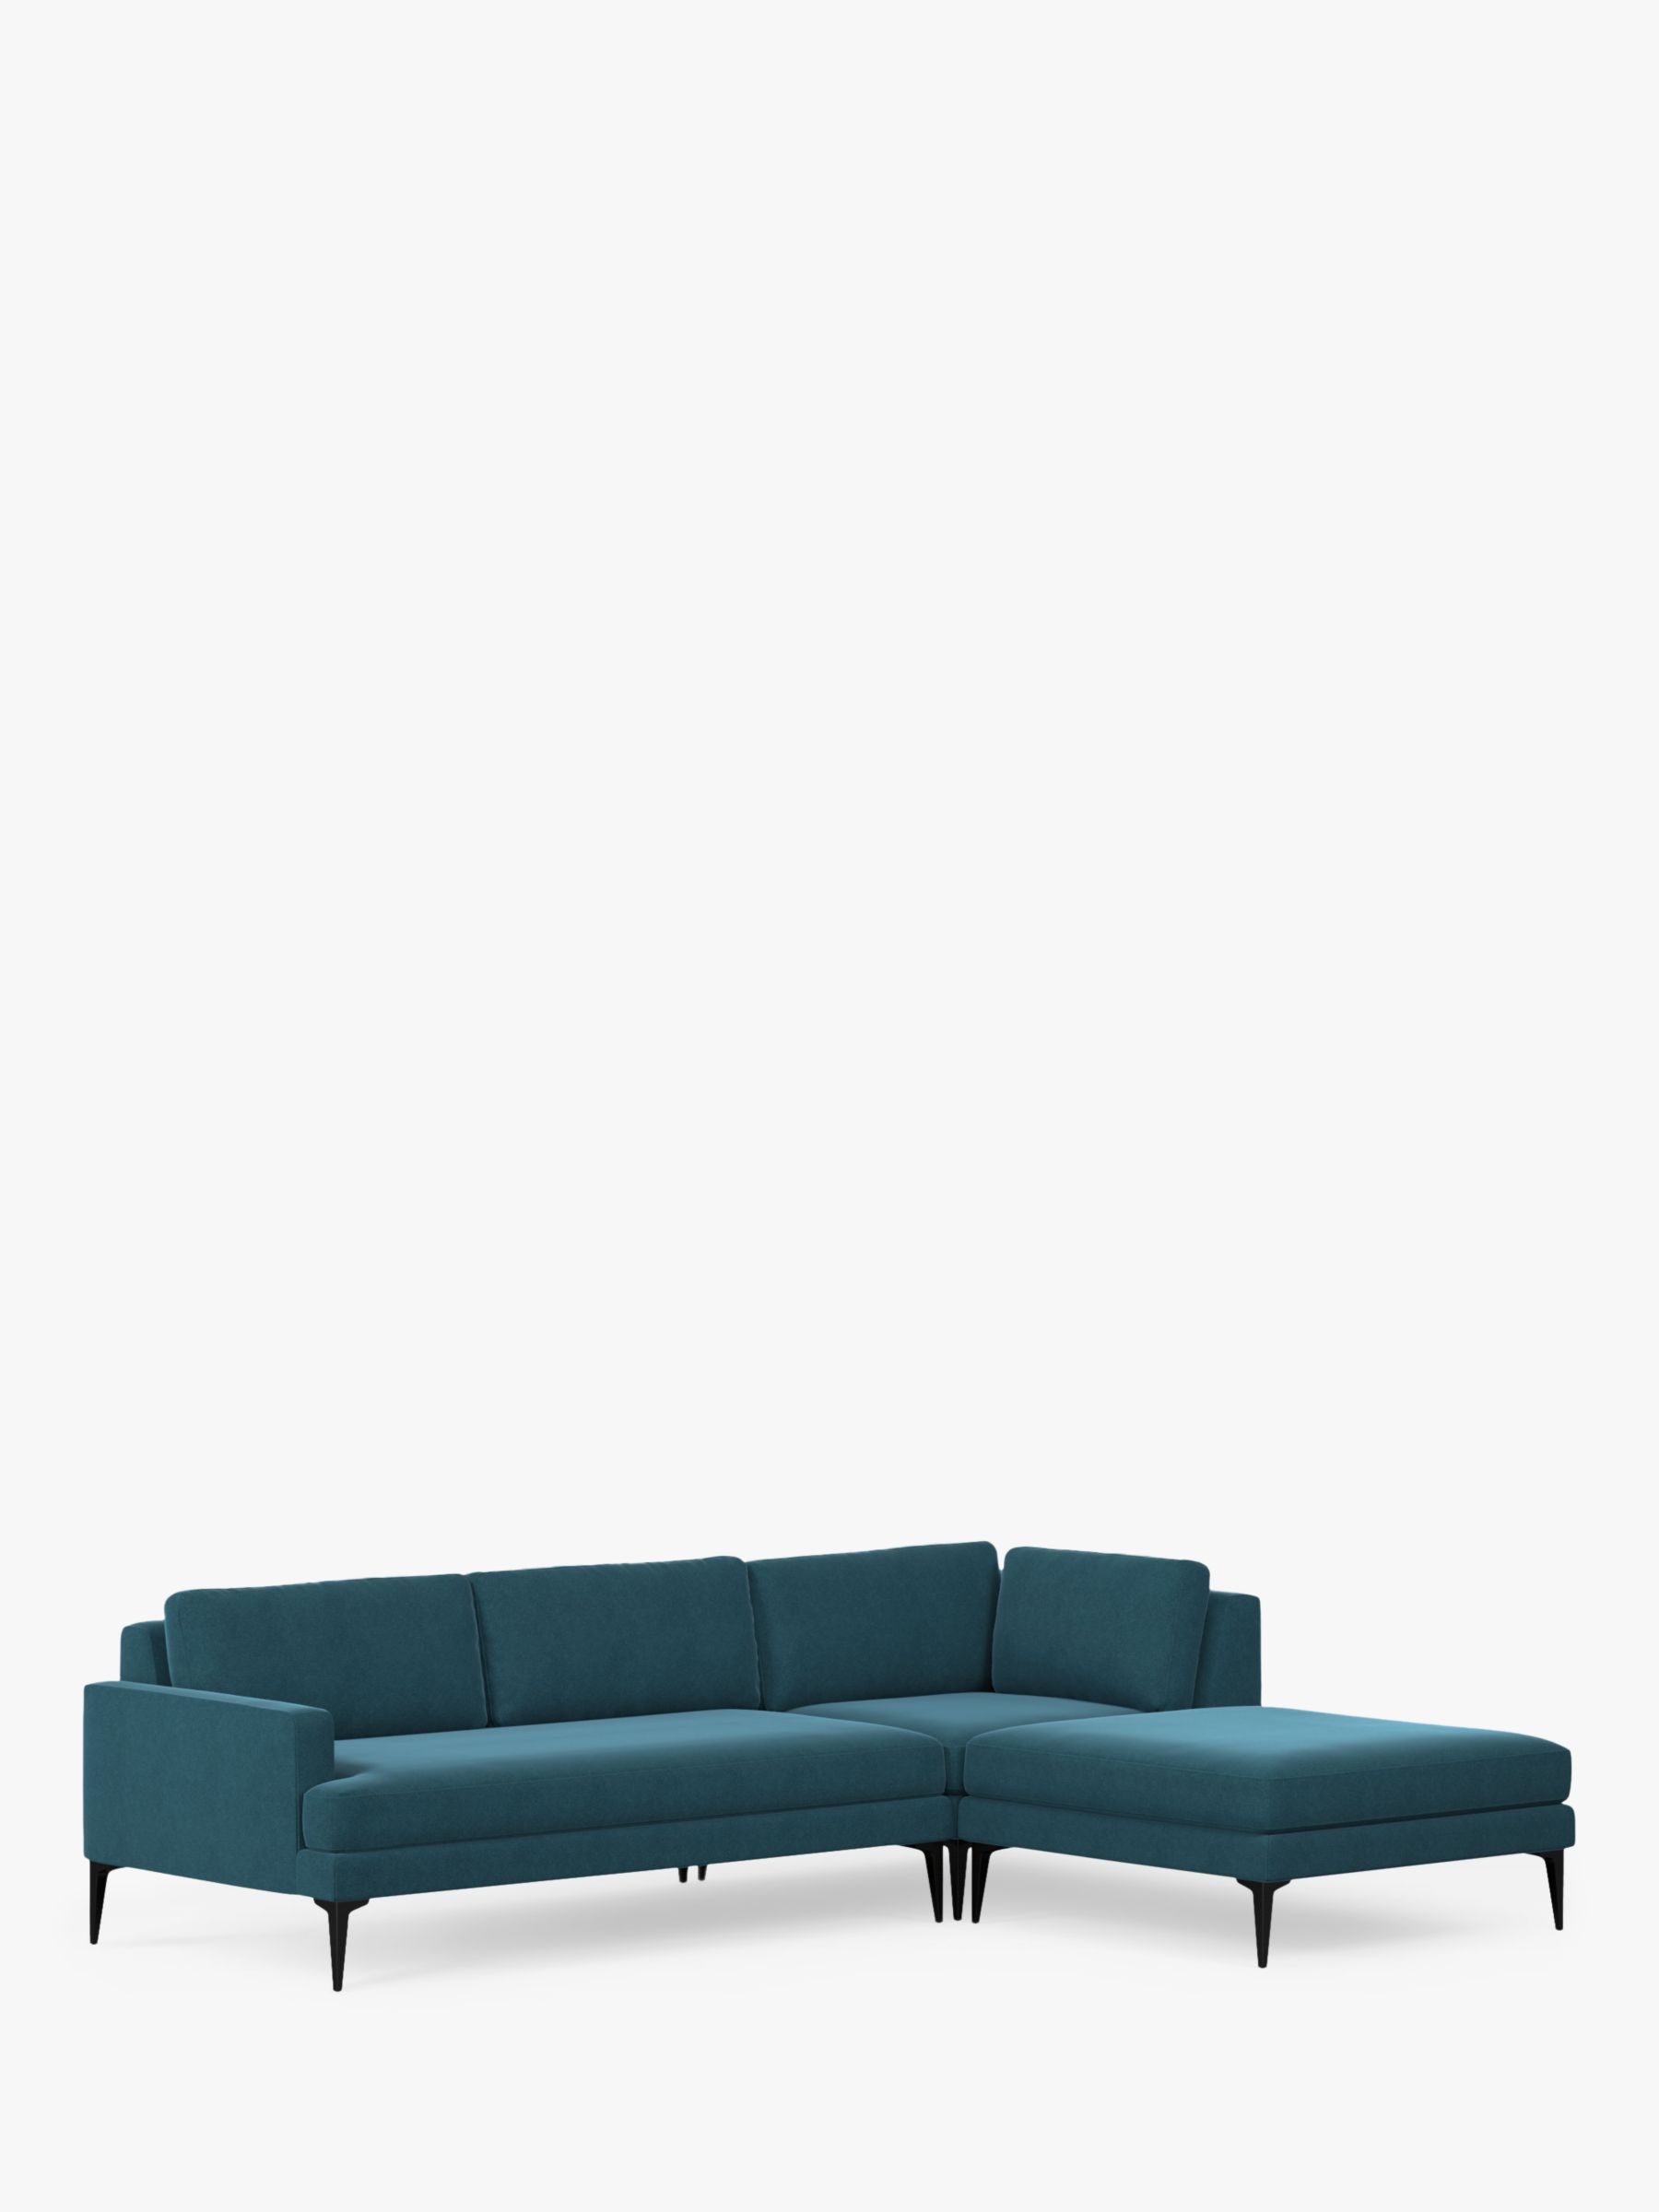 West Elm Andes Large 3 Seater Rhf Sectional Sofa Lagoon Velvet